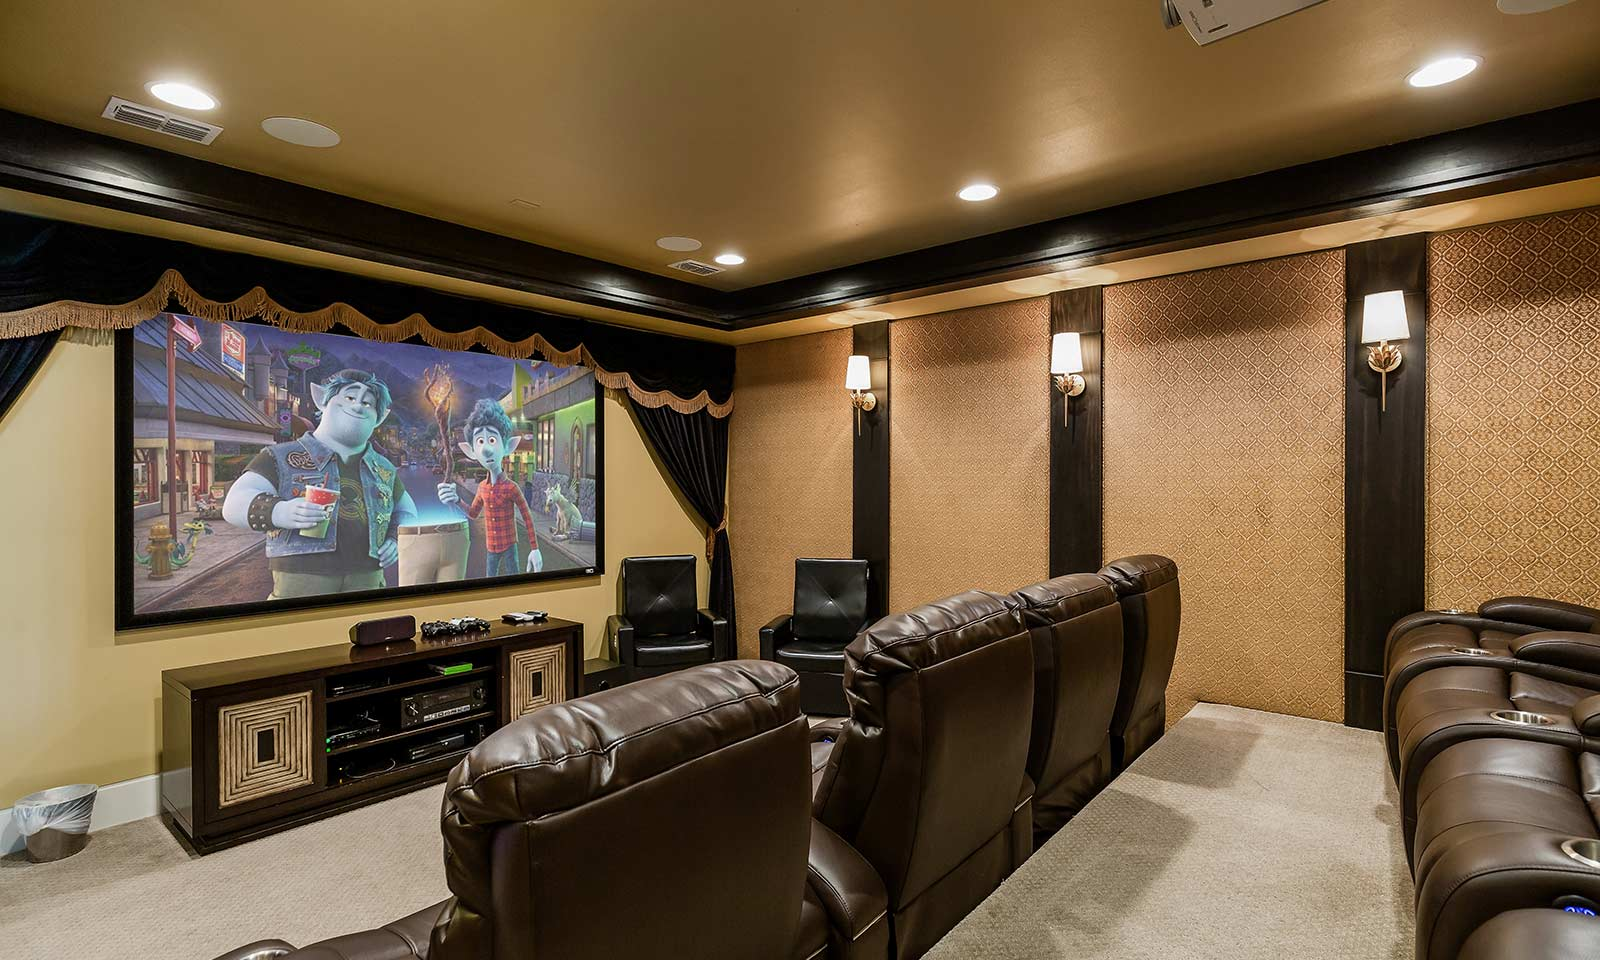 [amenities:Theater-Room:1] Theater Room